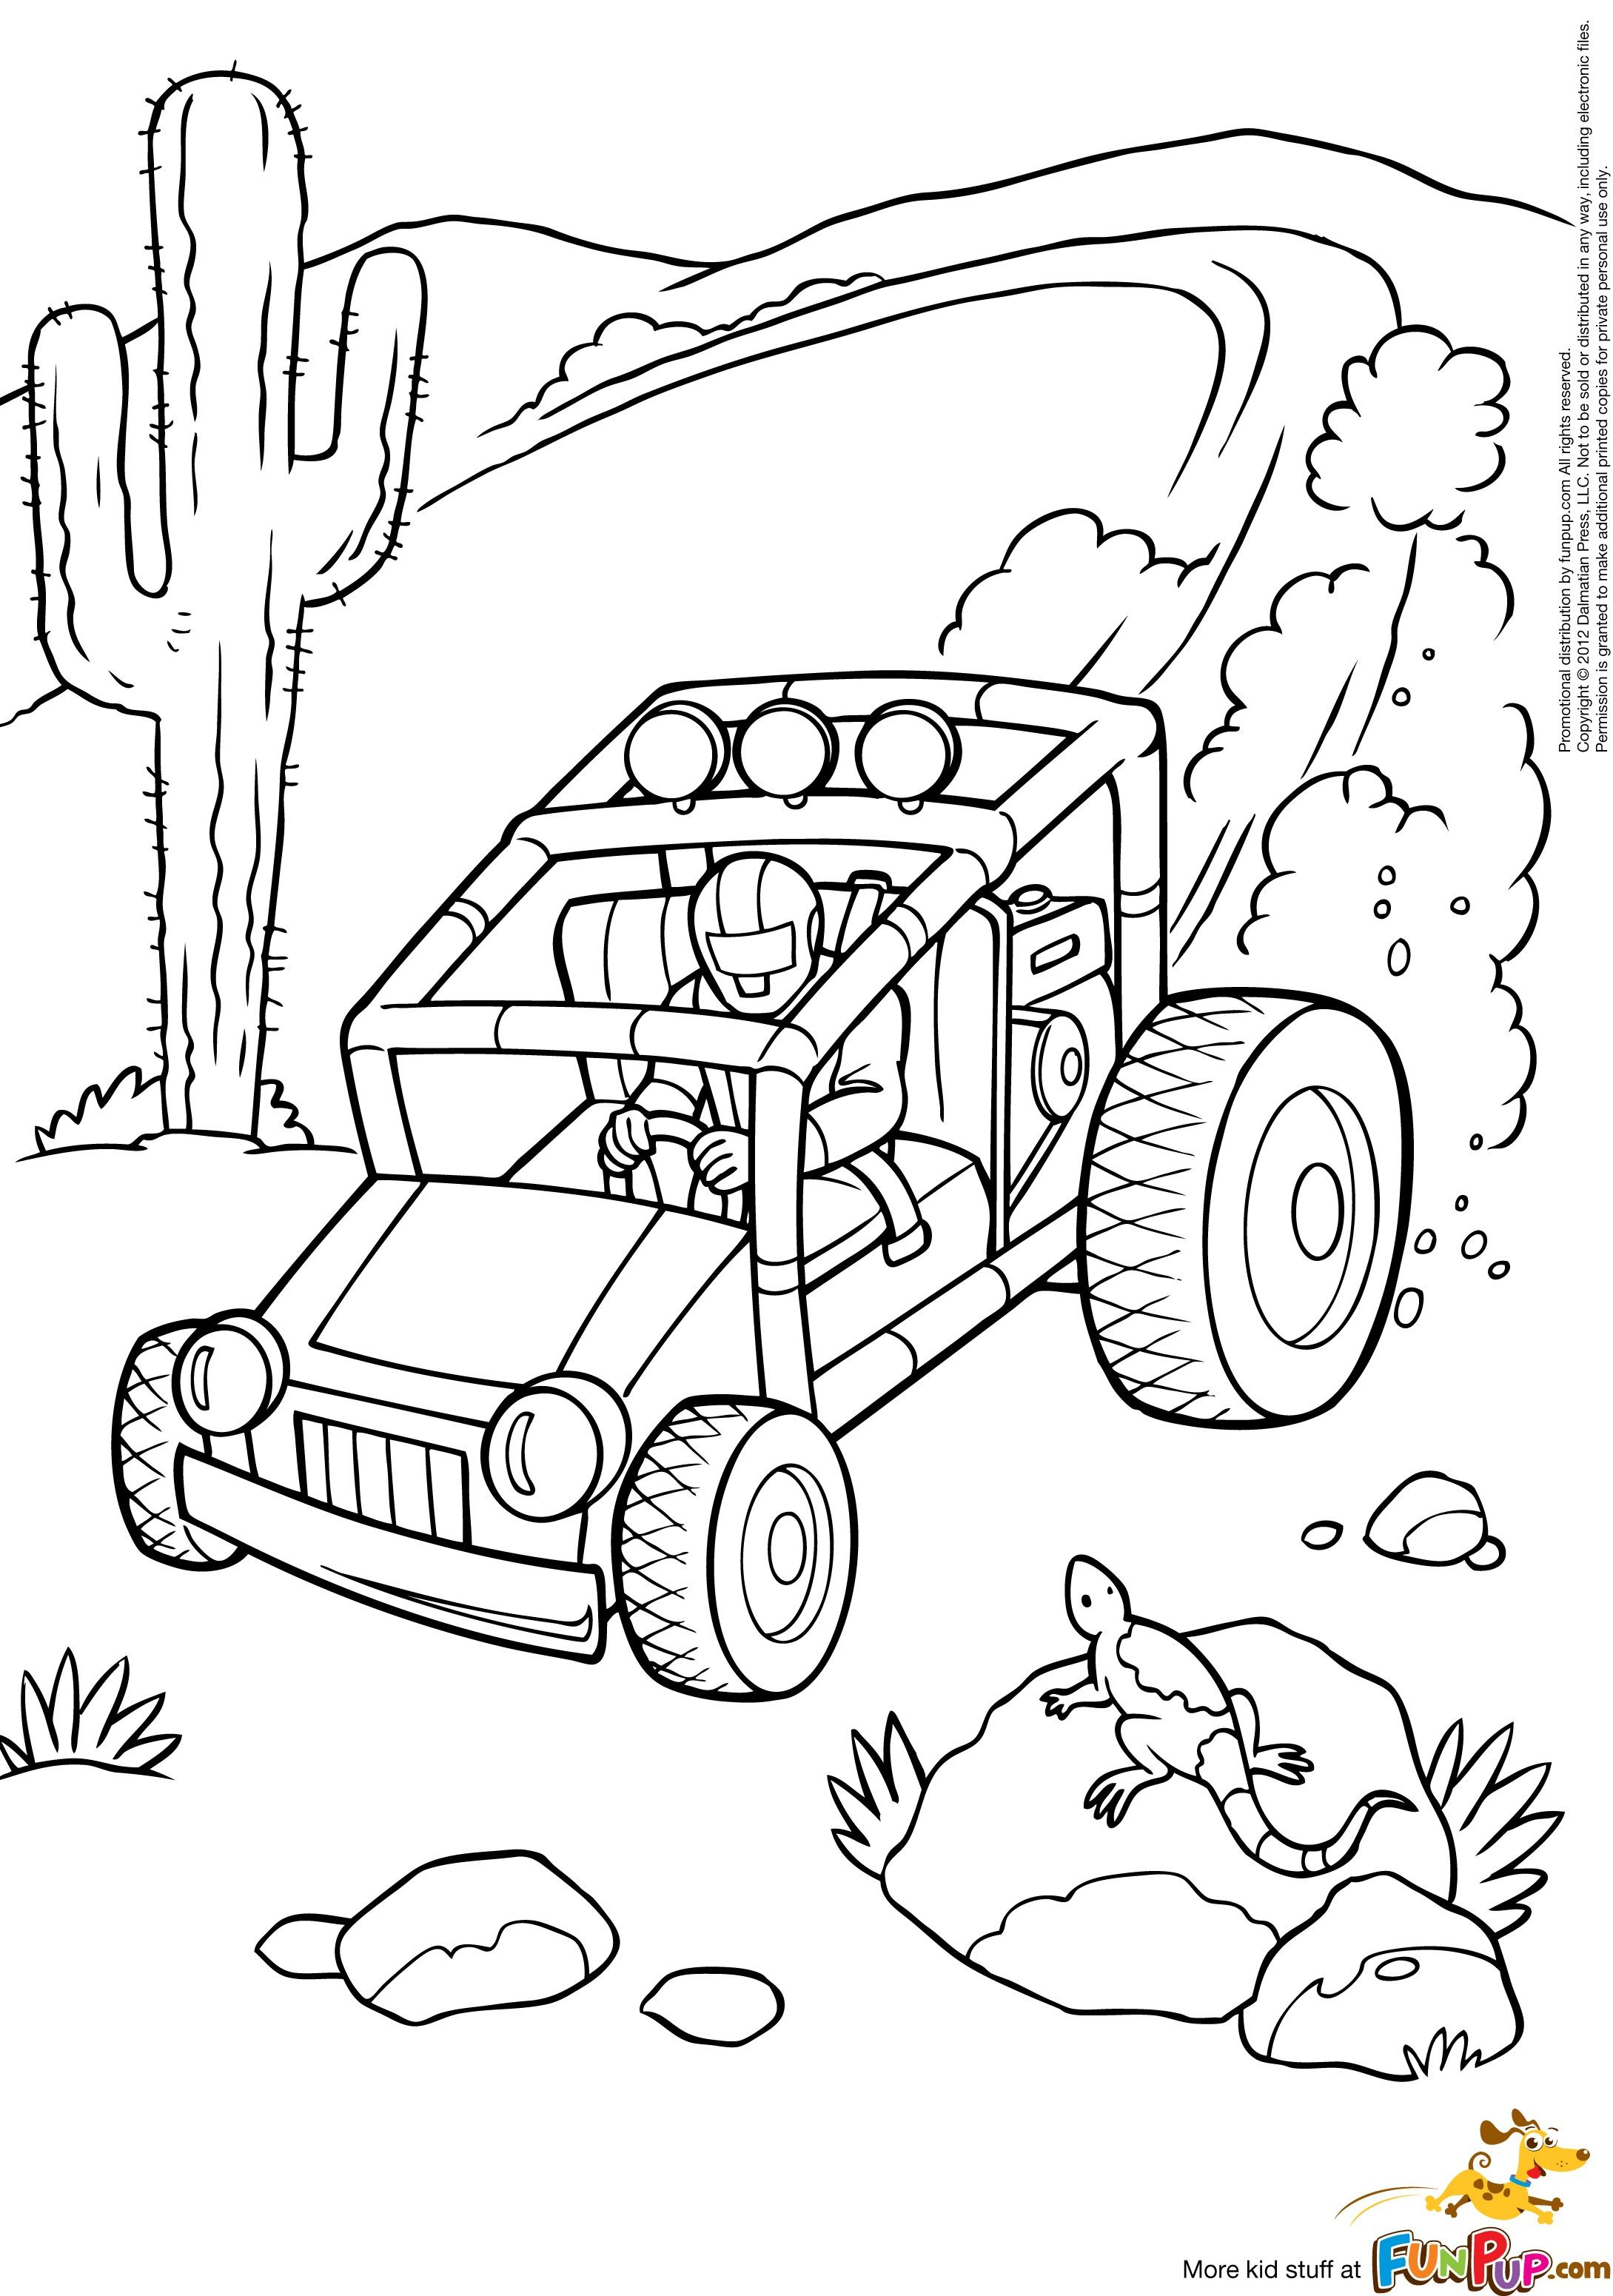 Buggy Coloring Dune Pages 2020 Cars Coloring Pages Dune